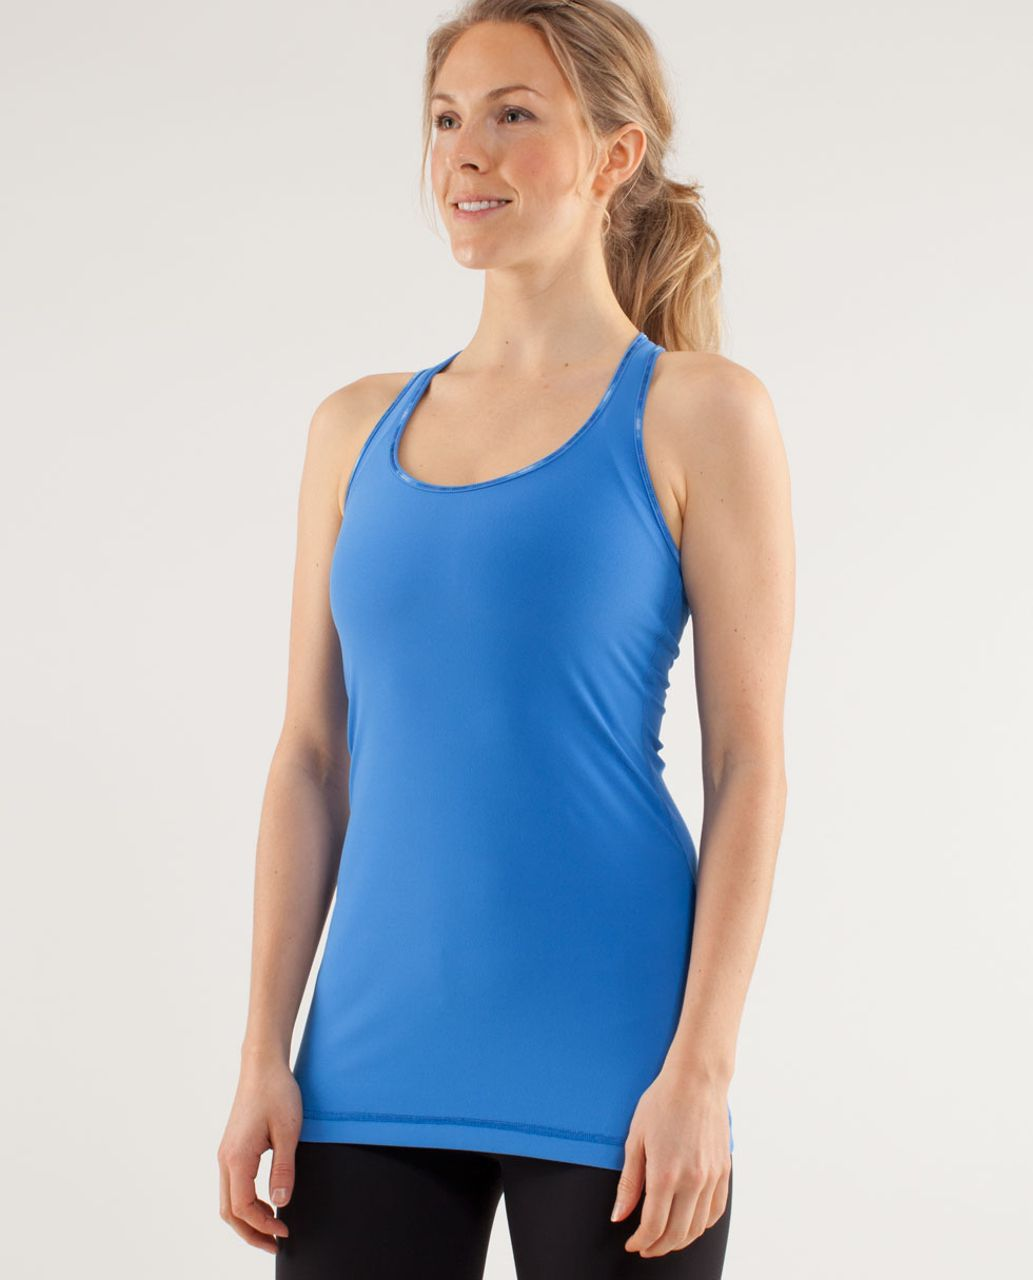 Lululemon Cool Racerback (First Release) - Porcelaine